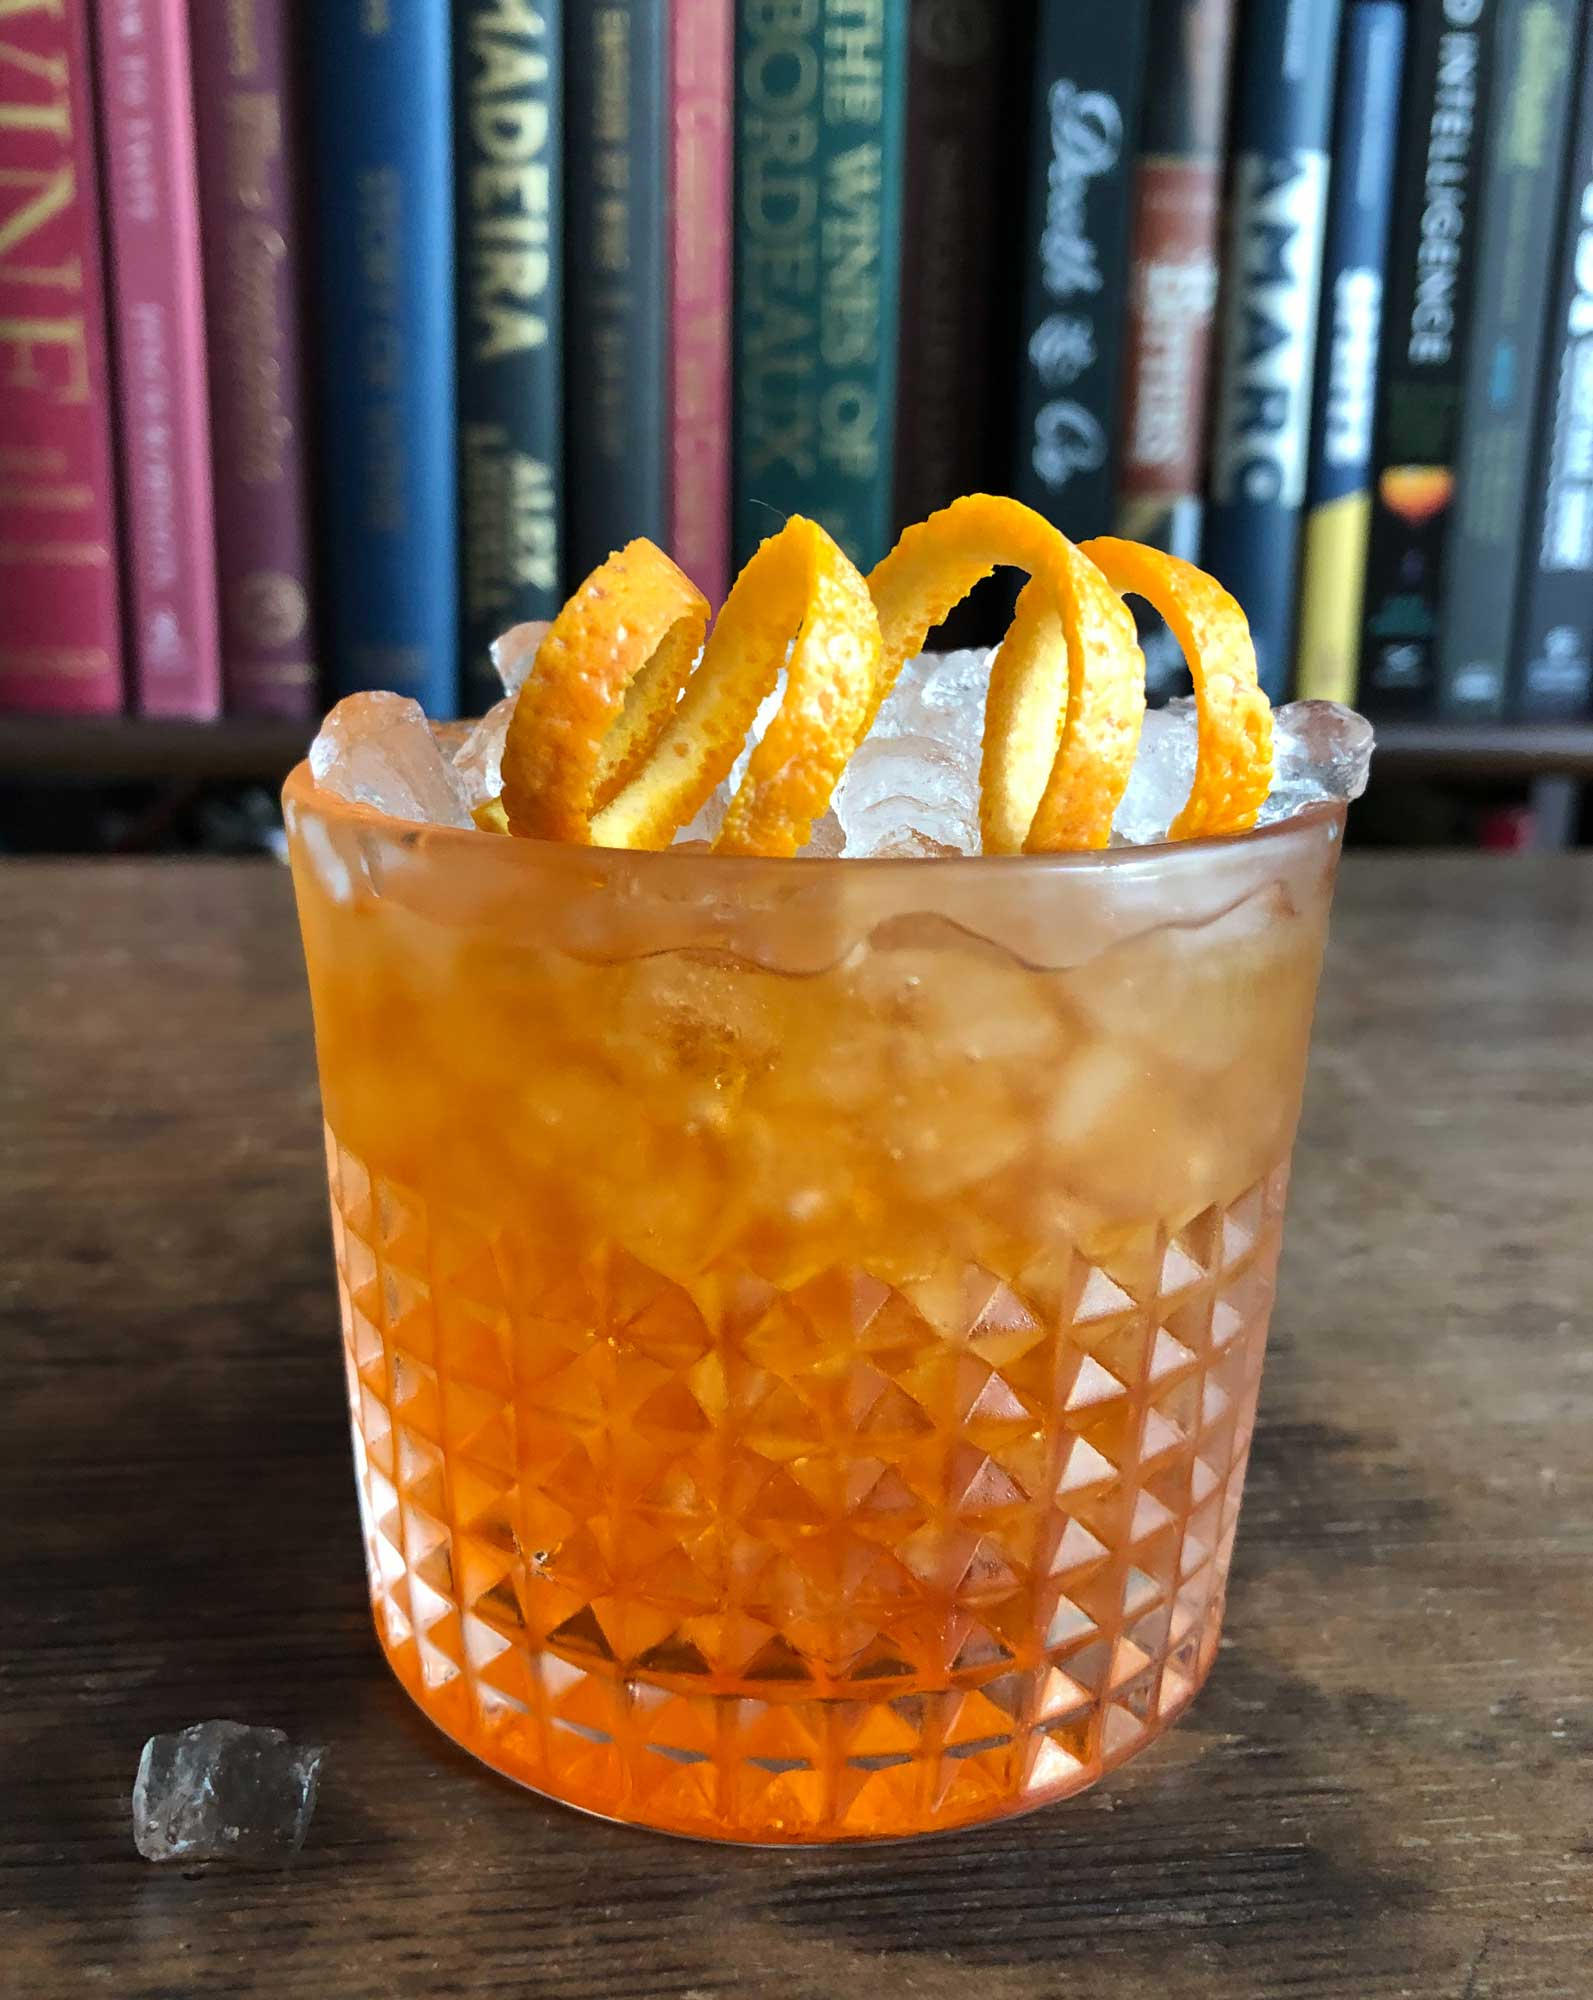 An example of the Negroni Sbagliato, the mixed drink (cocktail) featuring sparkling wine, Aperitivo Cappelletti, and Cocchi Vermouth di Torino; photo by Lee Edwards